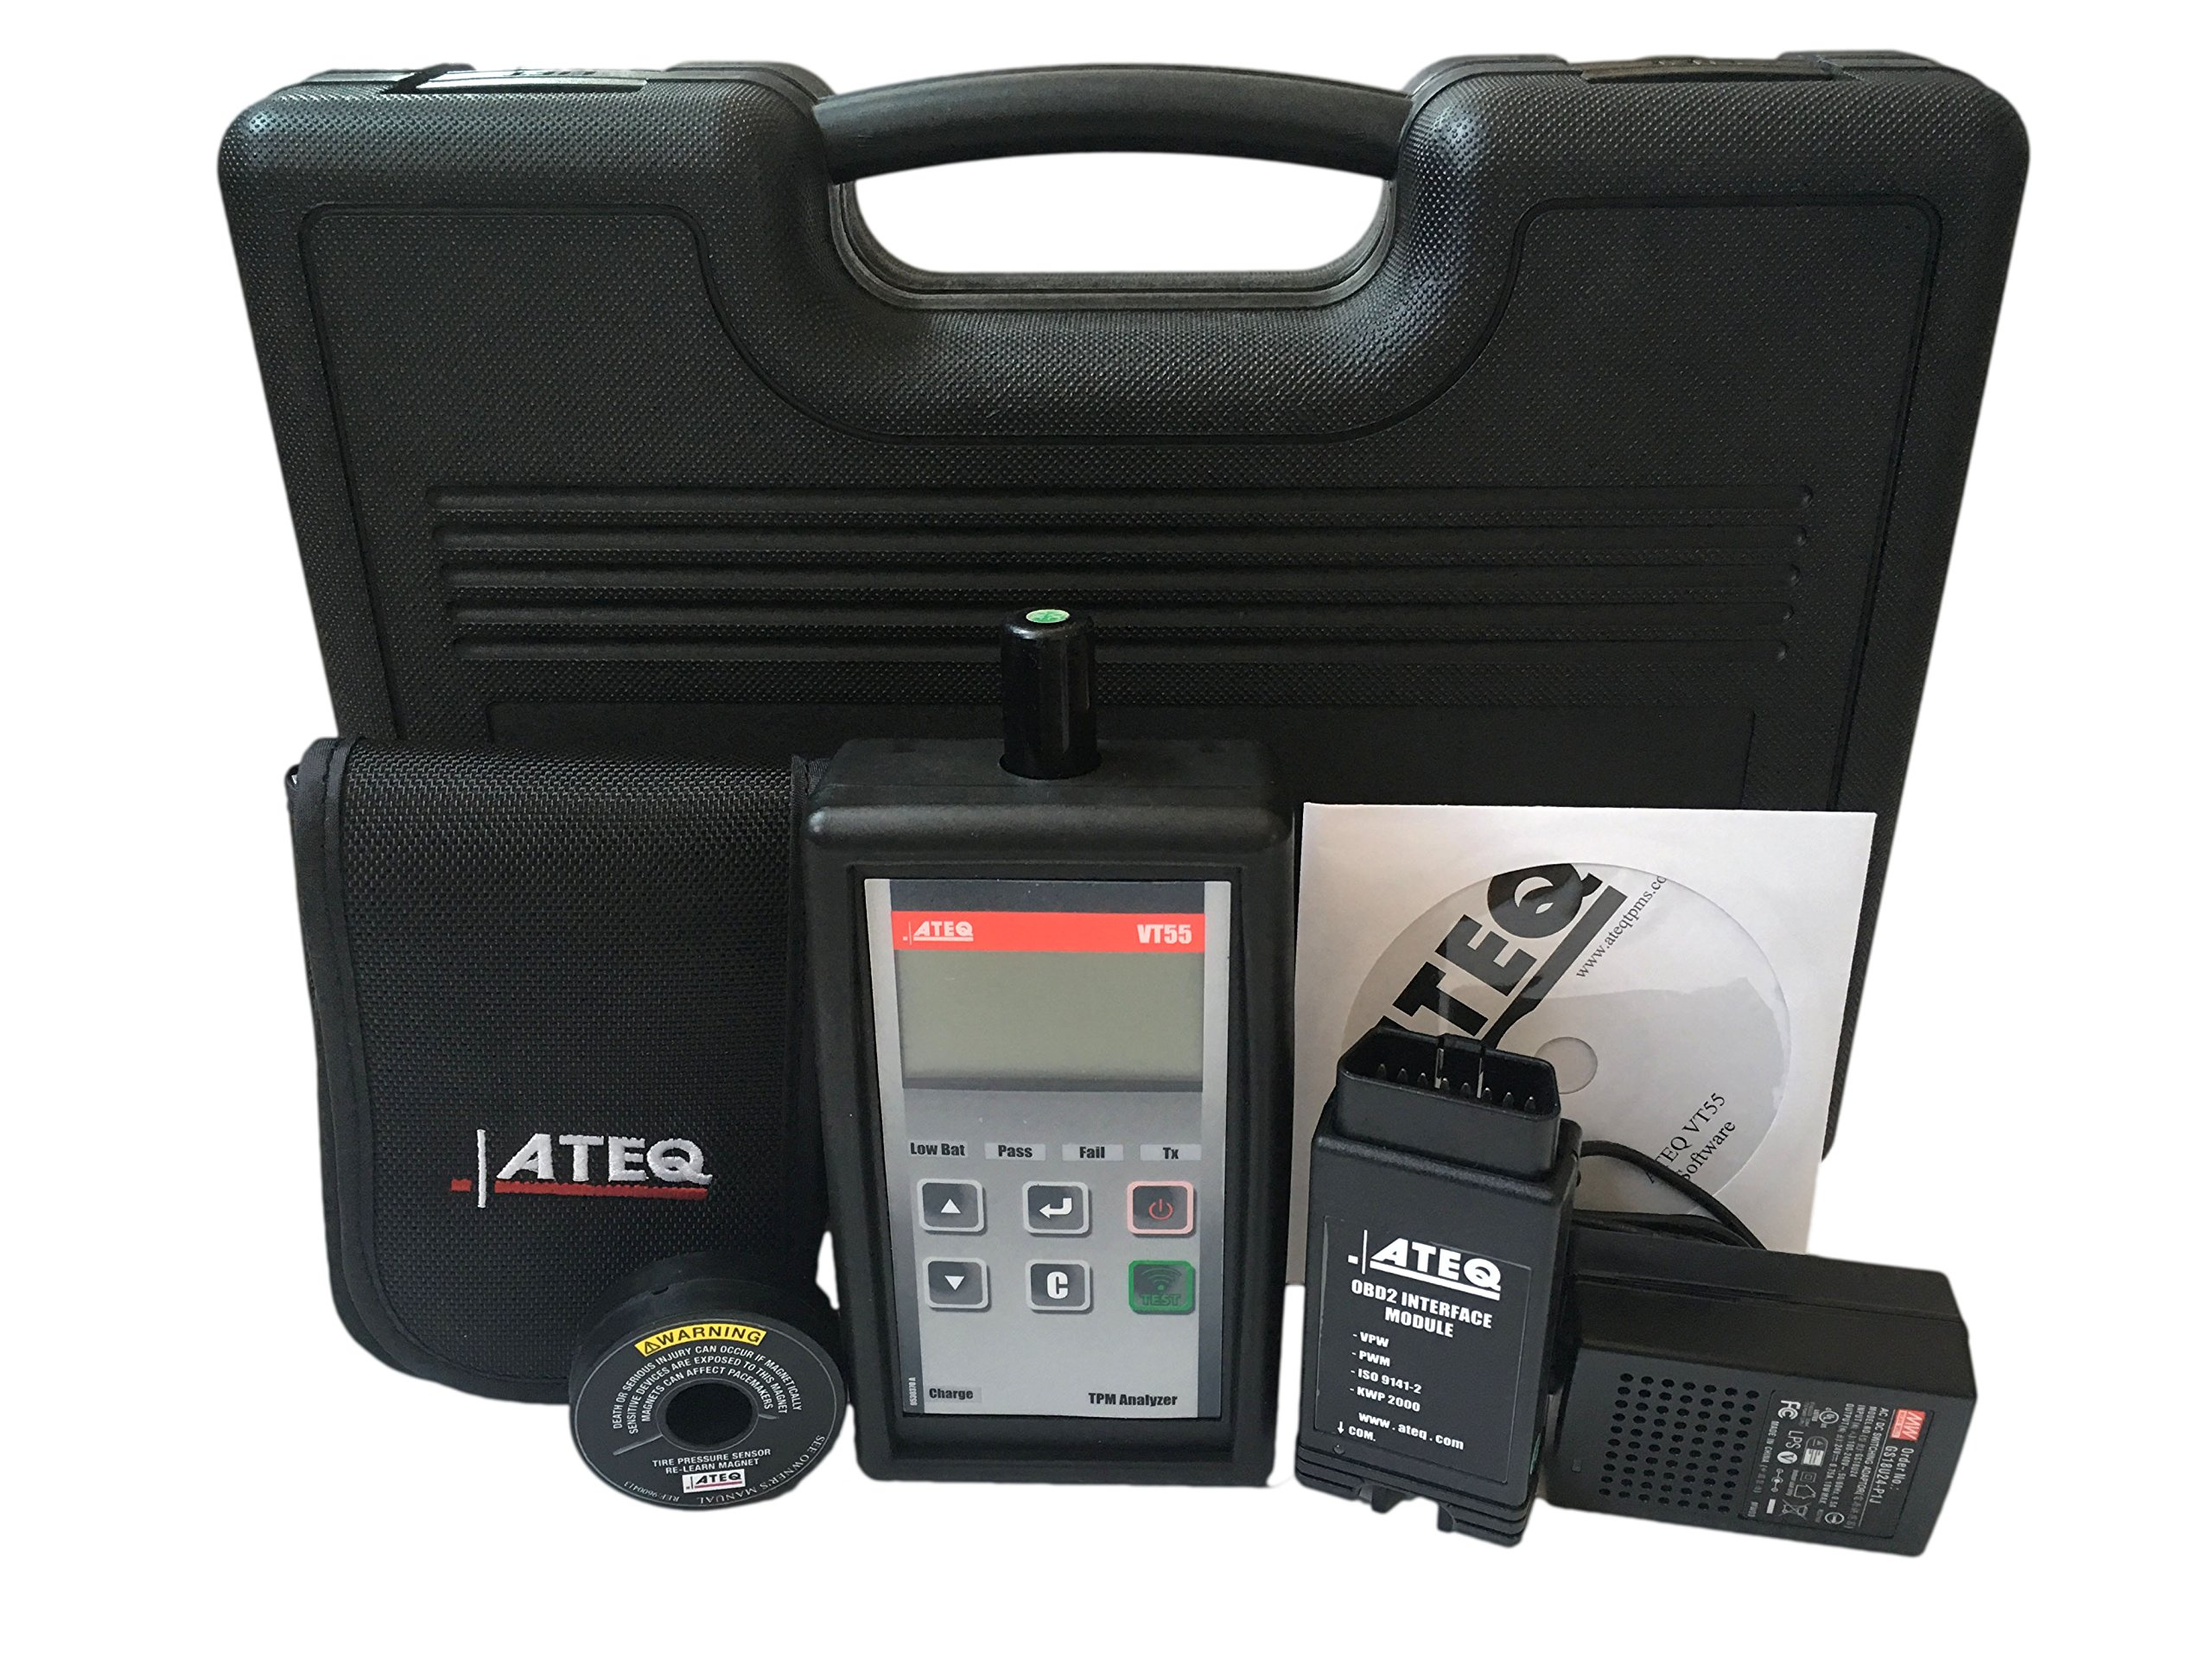 ATEQ VT55 OBDII TPMS Reset Activation Programmer ToolBlow Out Sale